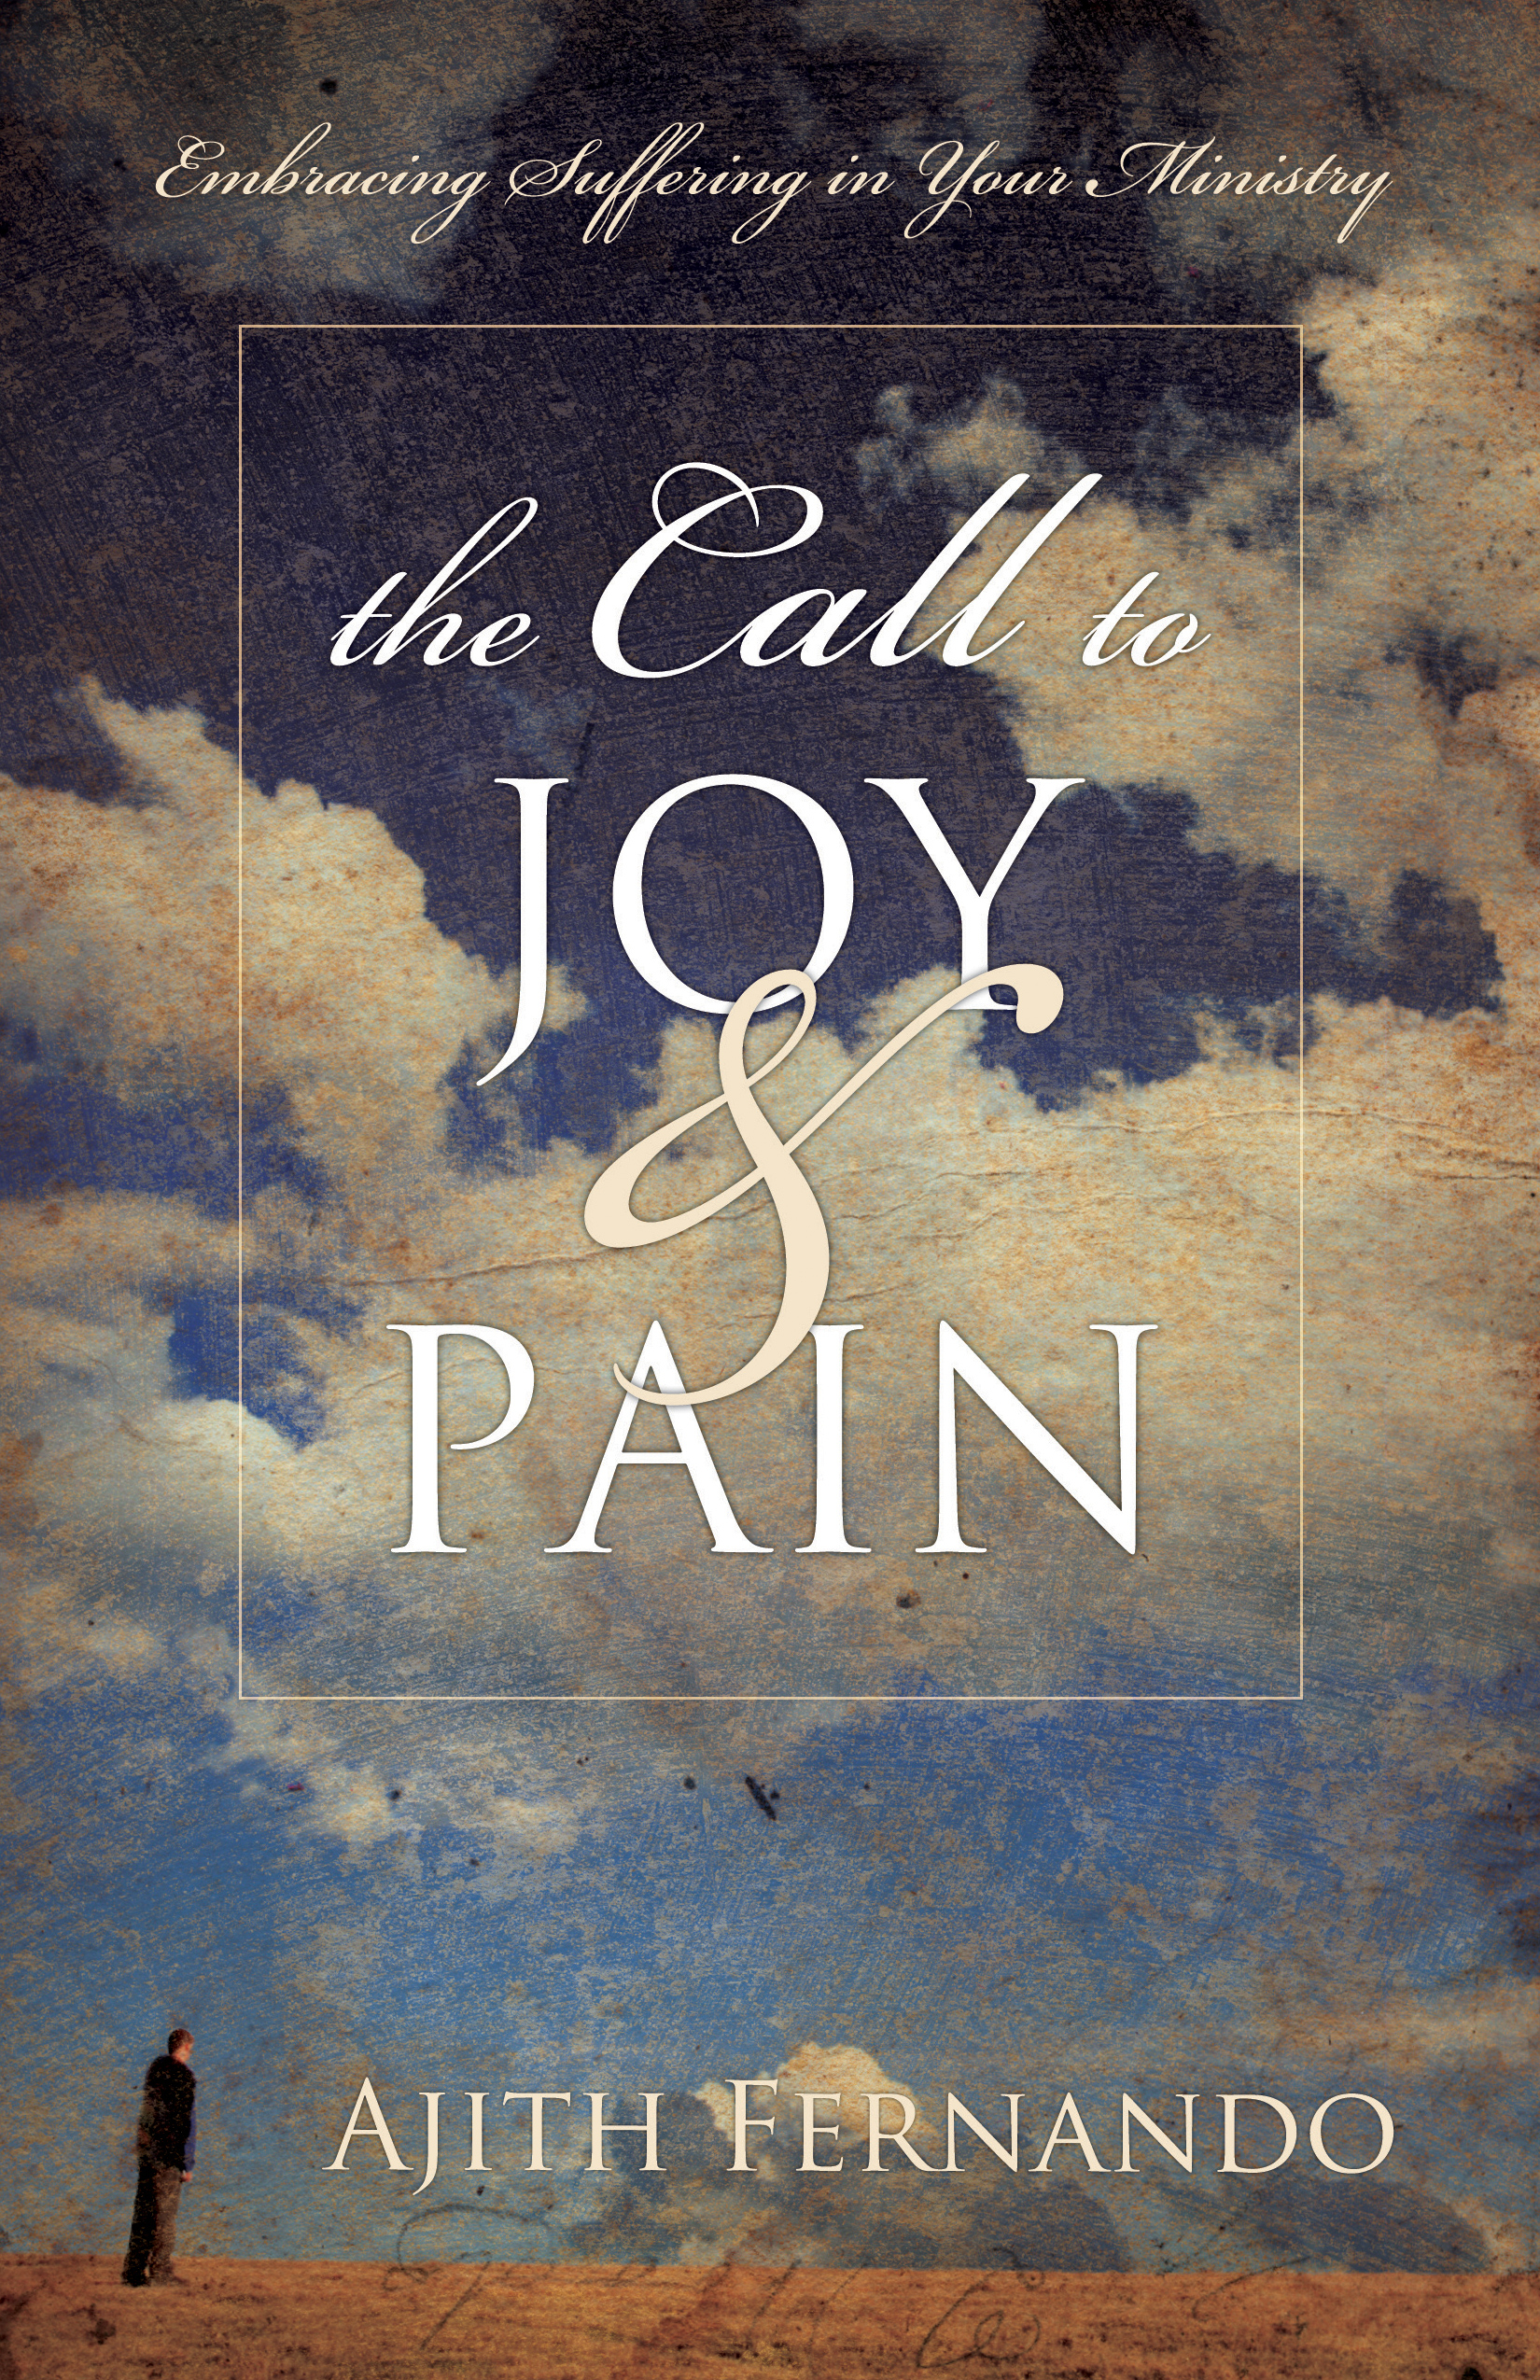 The Call to Joy and Pain Embracing Suffering in Your Ministry